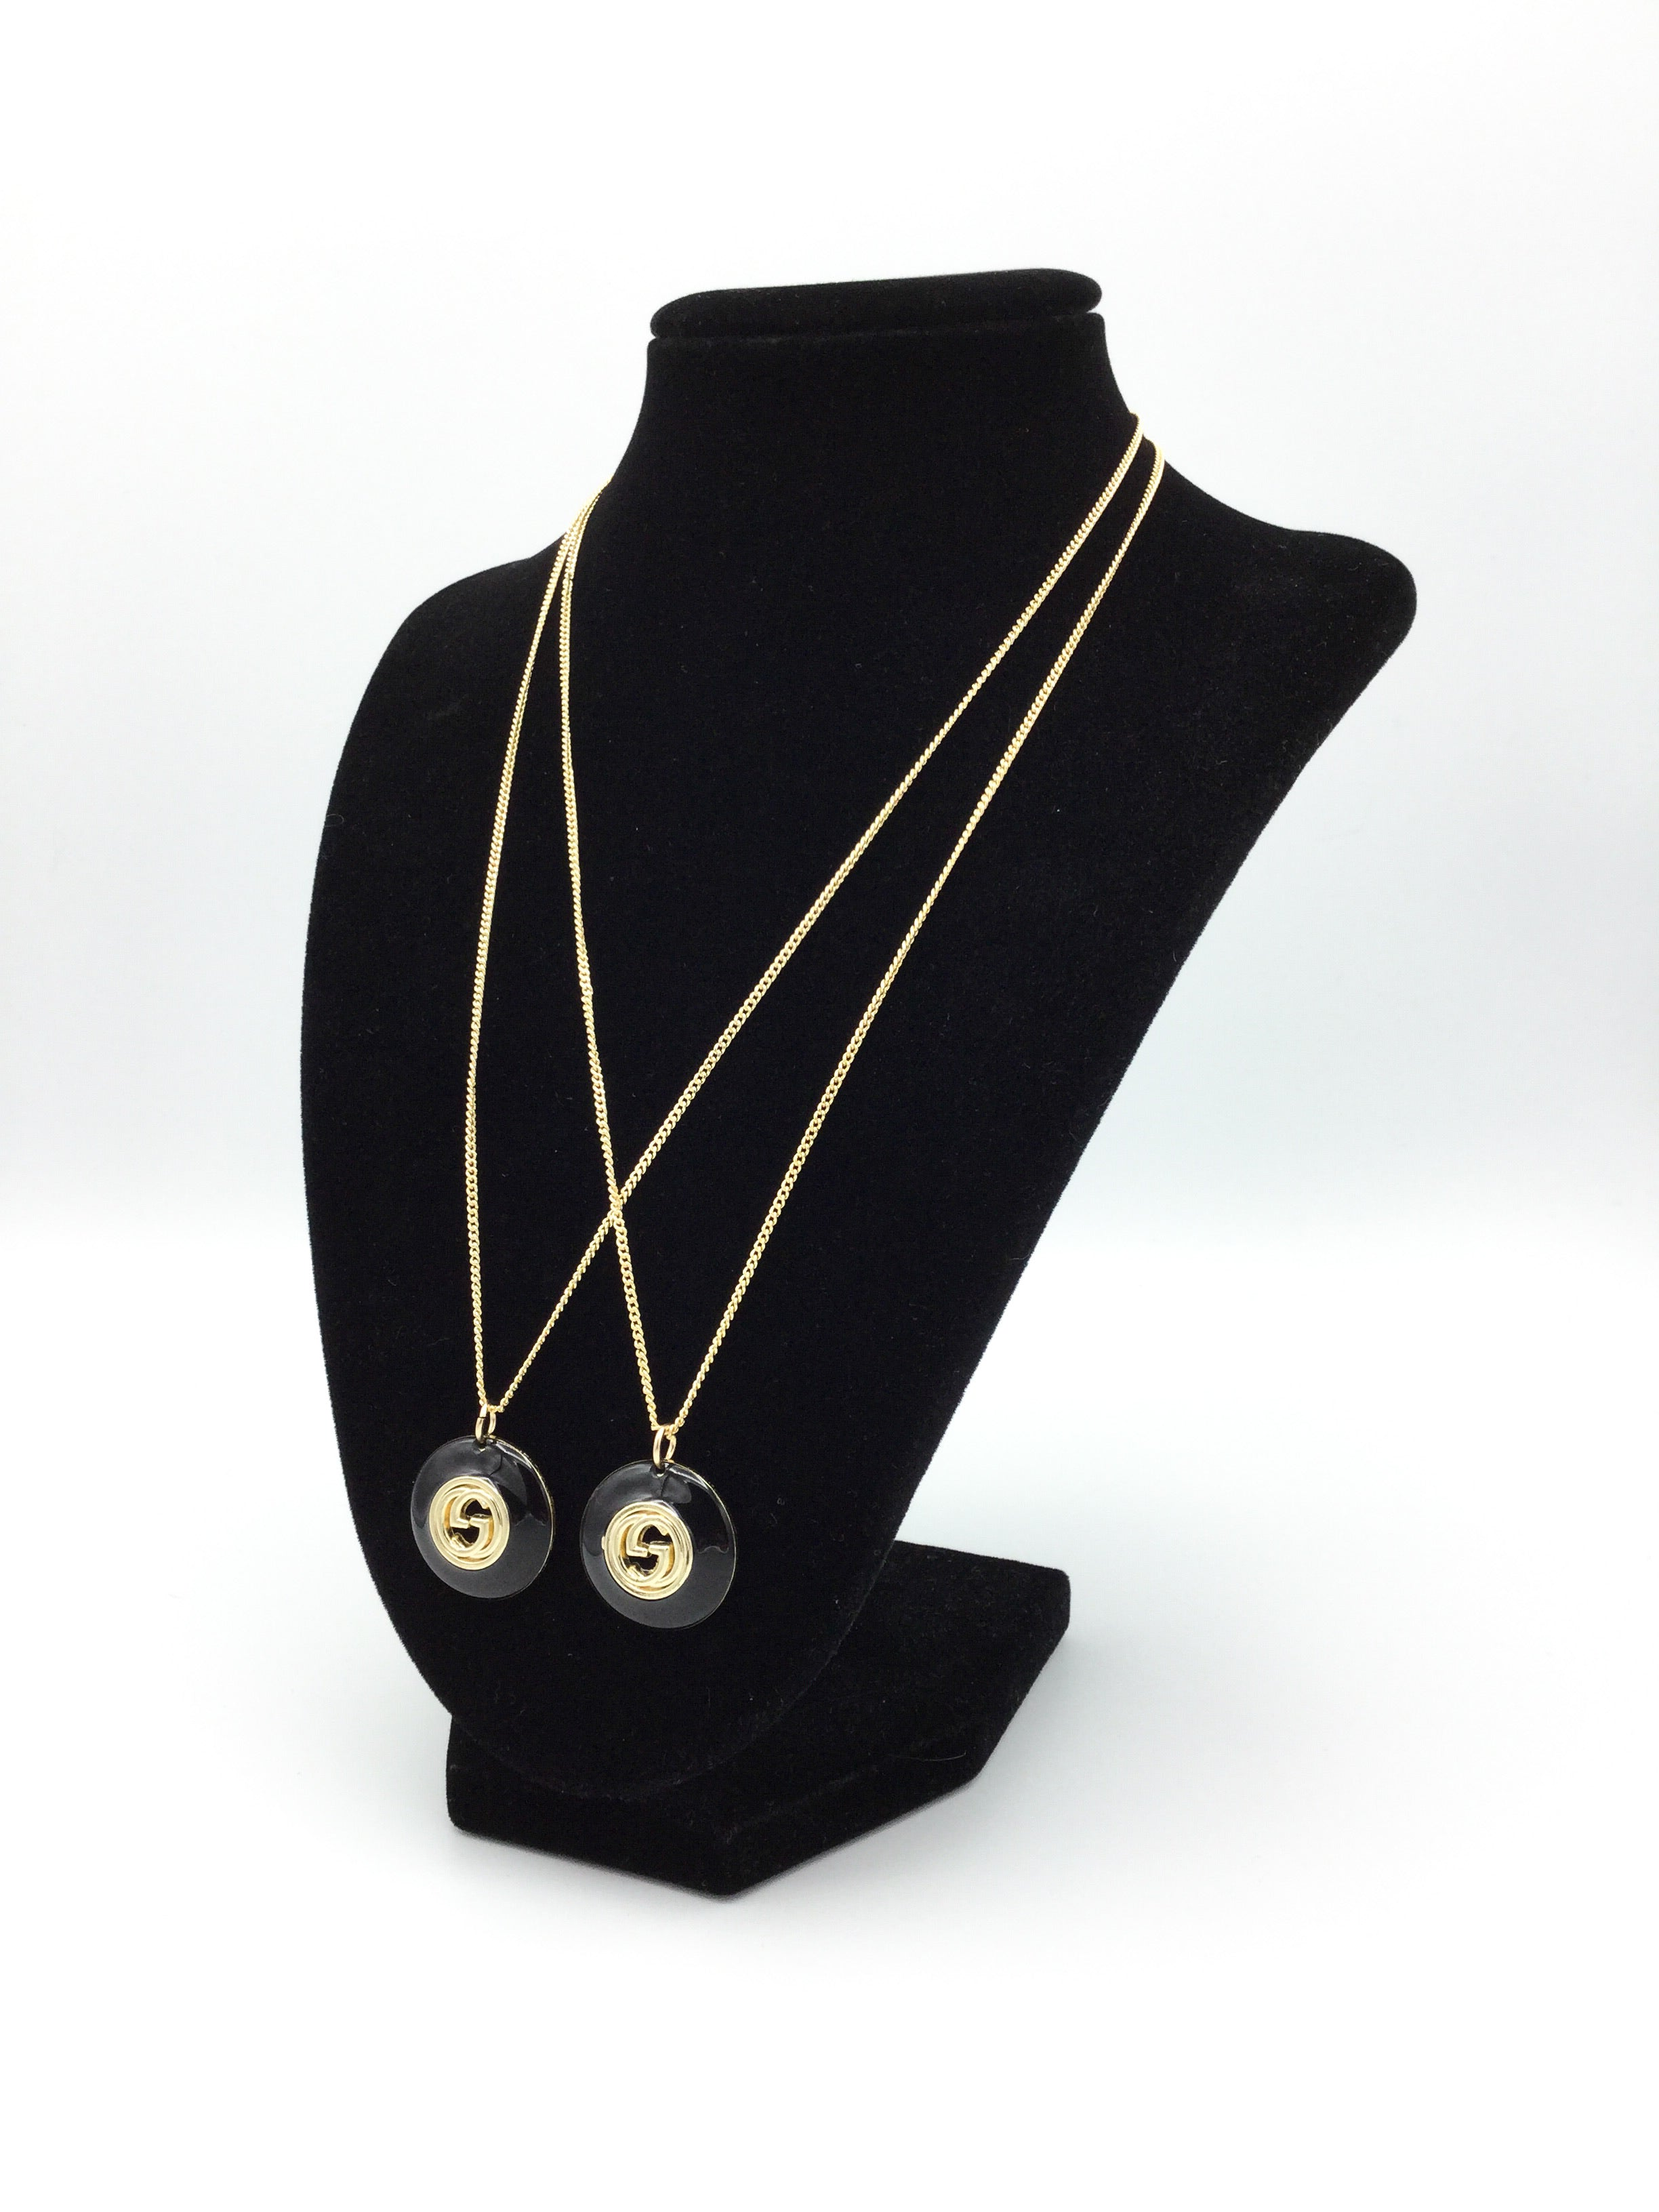 Black and Gold Button Necklace by Designer Therapy